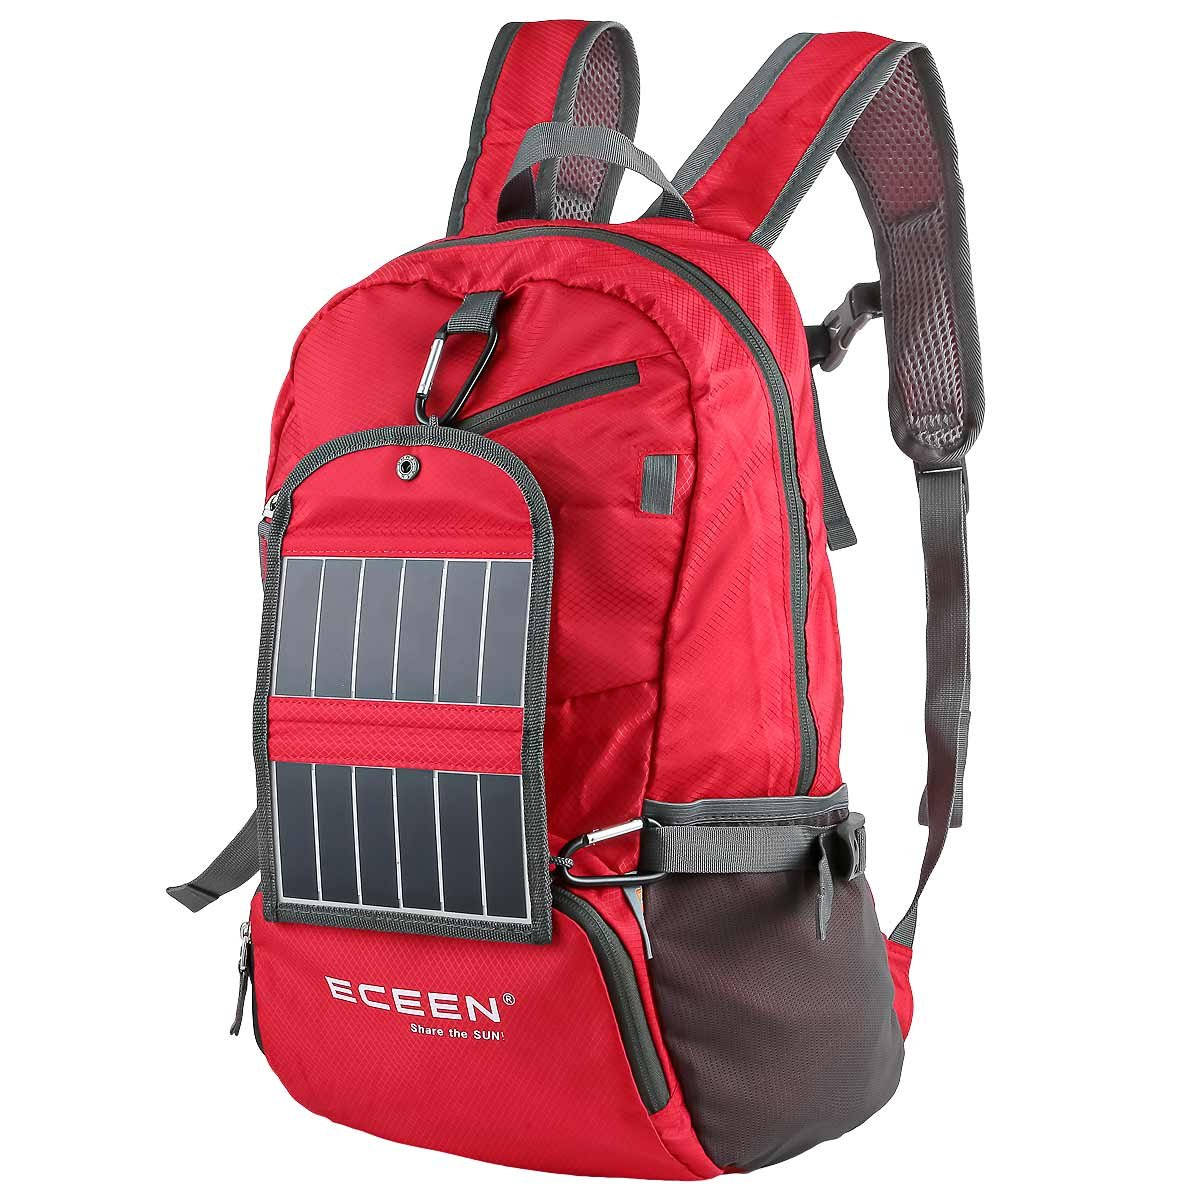 ECEEN® Solar Powered Hiking Daypacks with 3.25 Watts Solar Charger for Hiking, Travel, Backpacking, Biking, Camping - Folds Up into Carry Pouch – Power for Smart Cell Phones and More (Red) ECEEN Electronic Limited